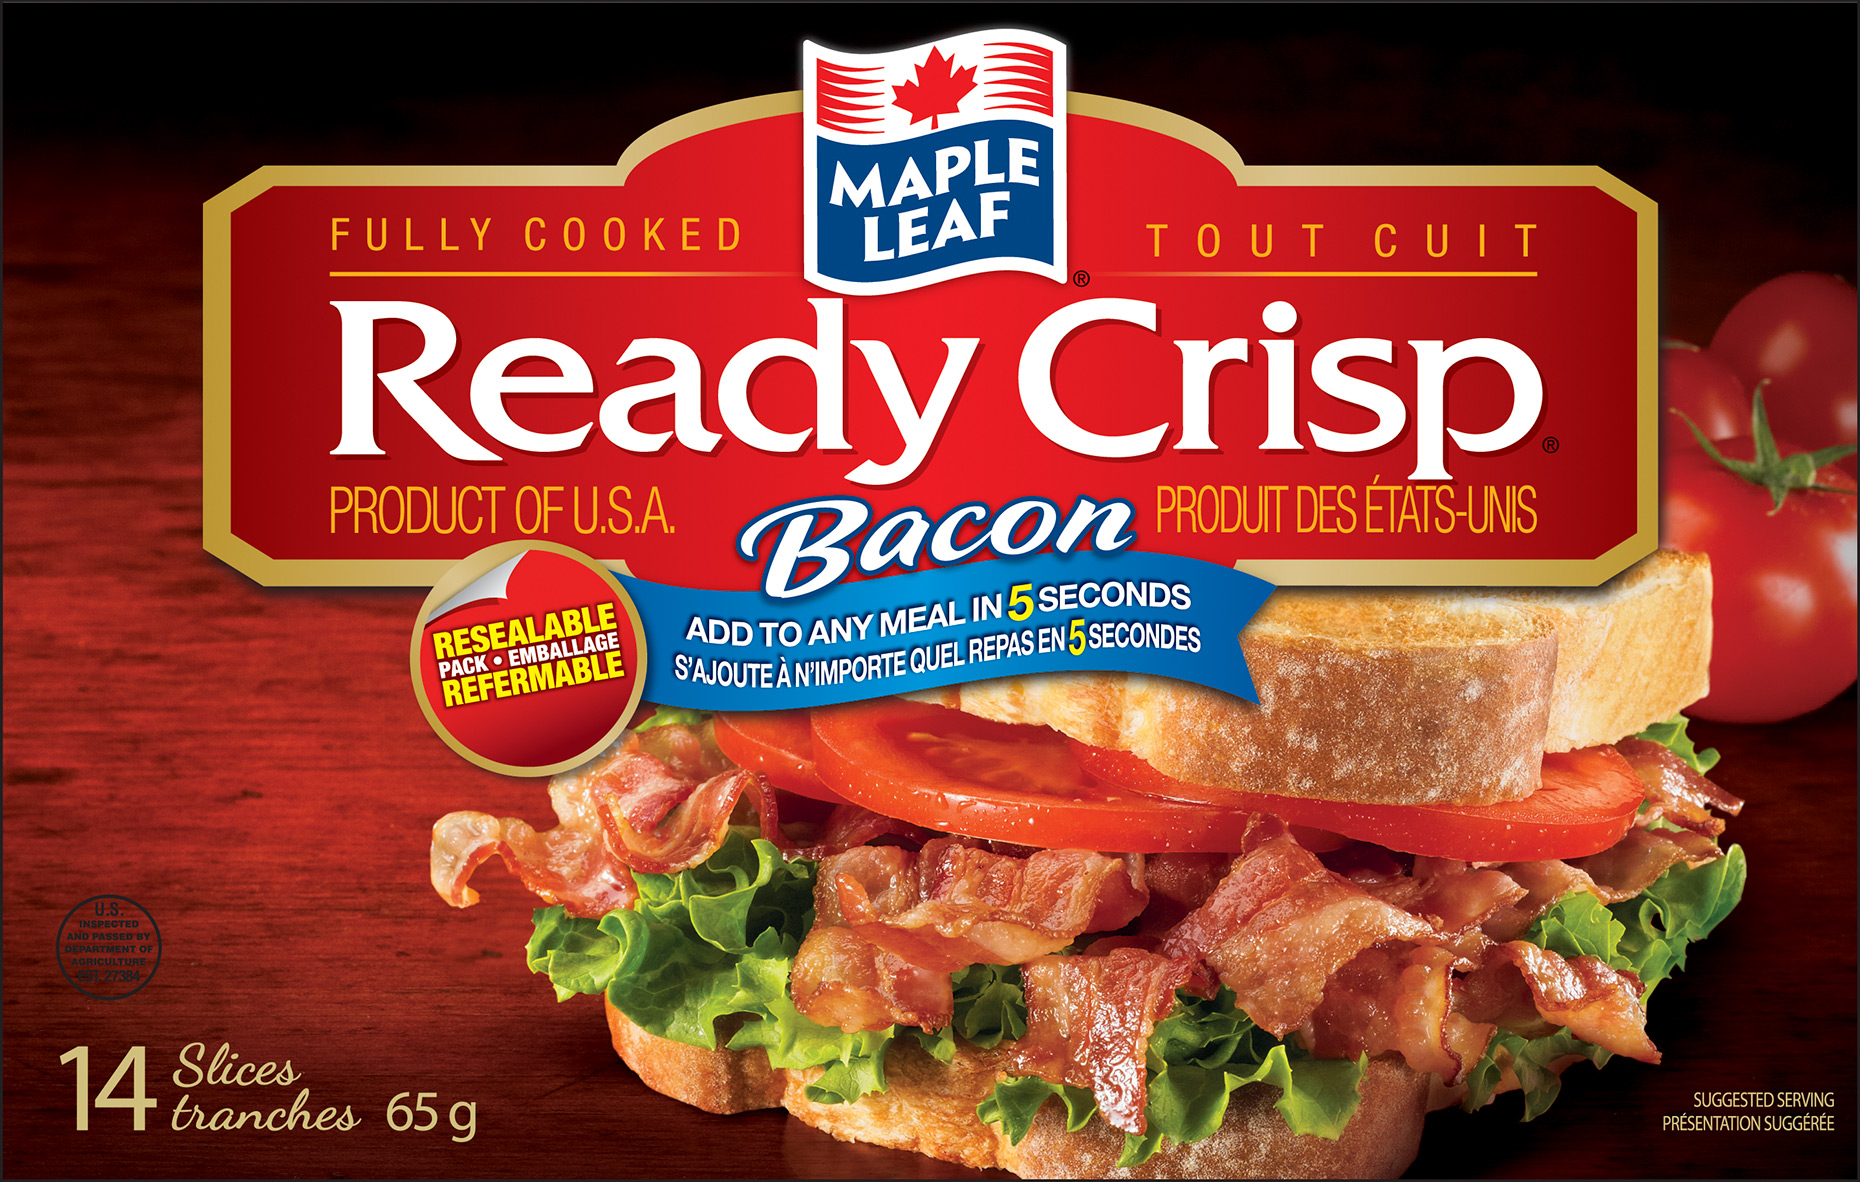 009-2Final_FaceMLReadyCrispBacon